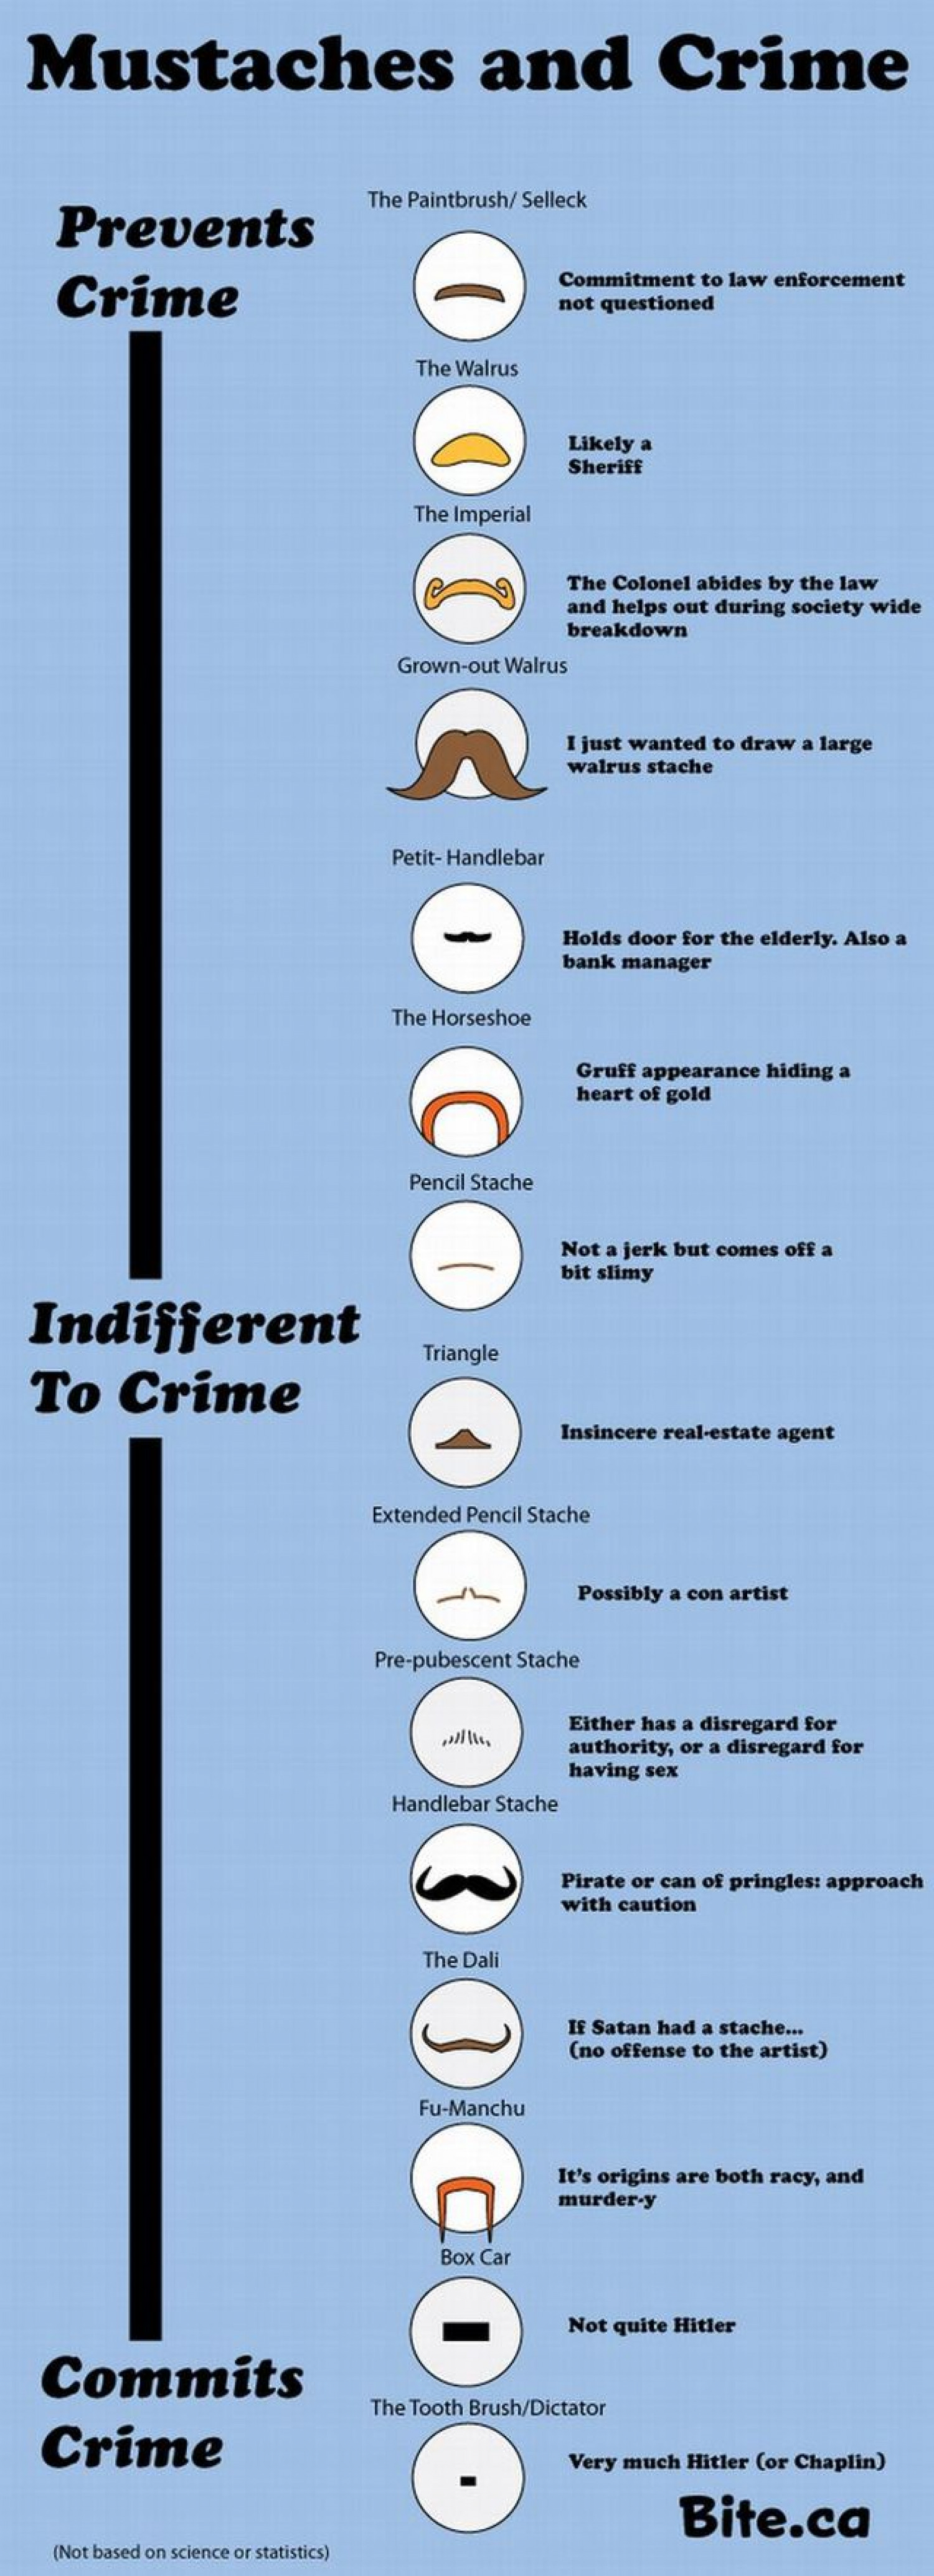 Mustaches and Crime Infographic